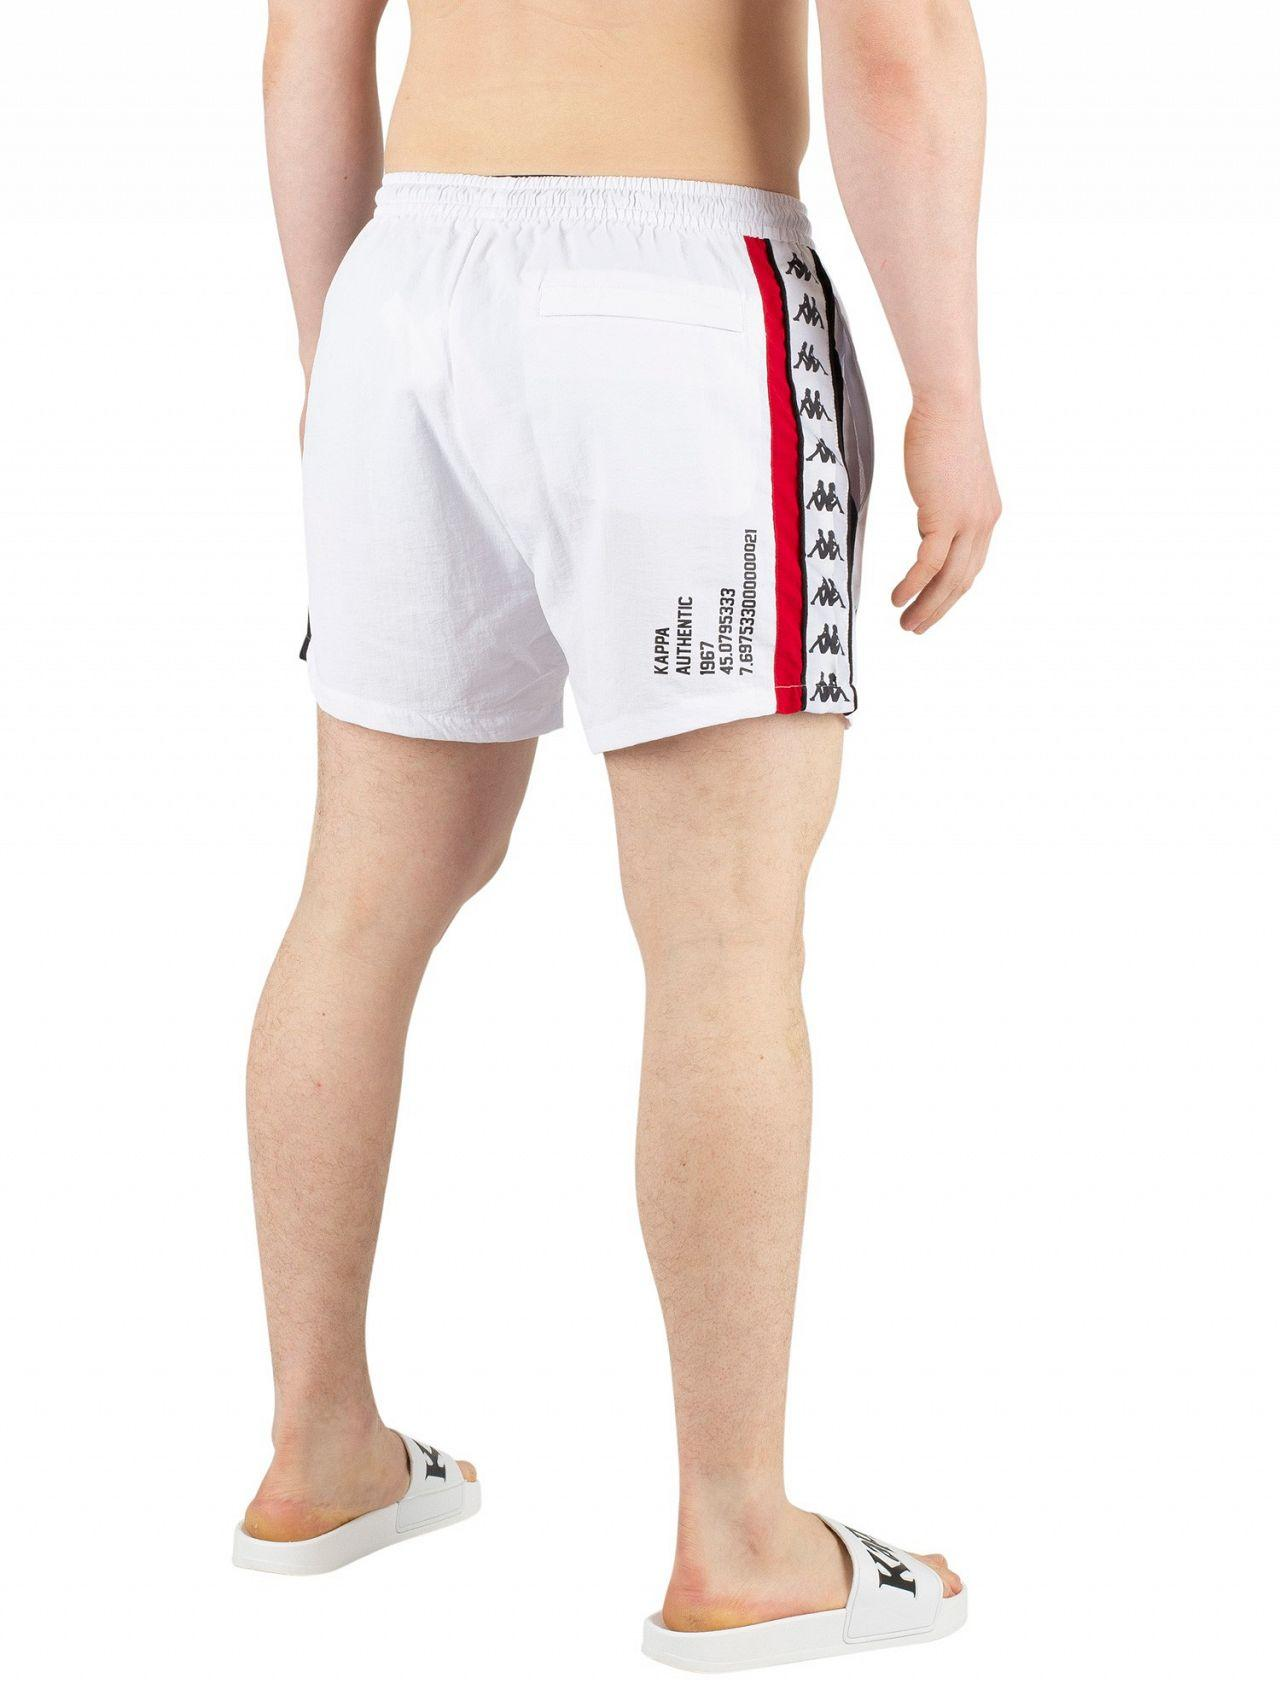 fe9677347a4c5 Lyst - Kappa White/red/black Authentic Baten Swim Shorts in White ...